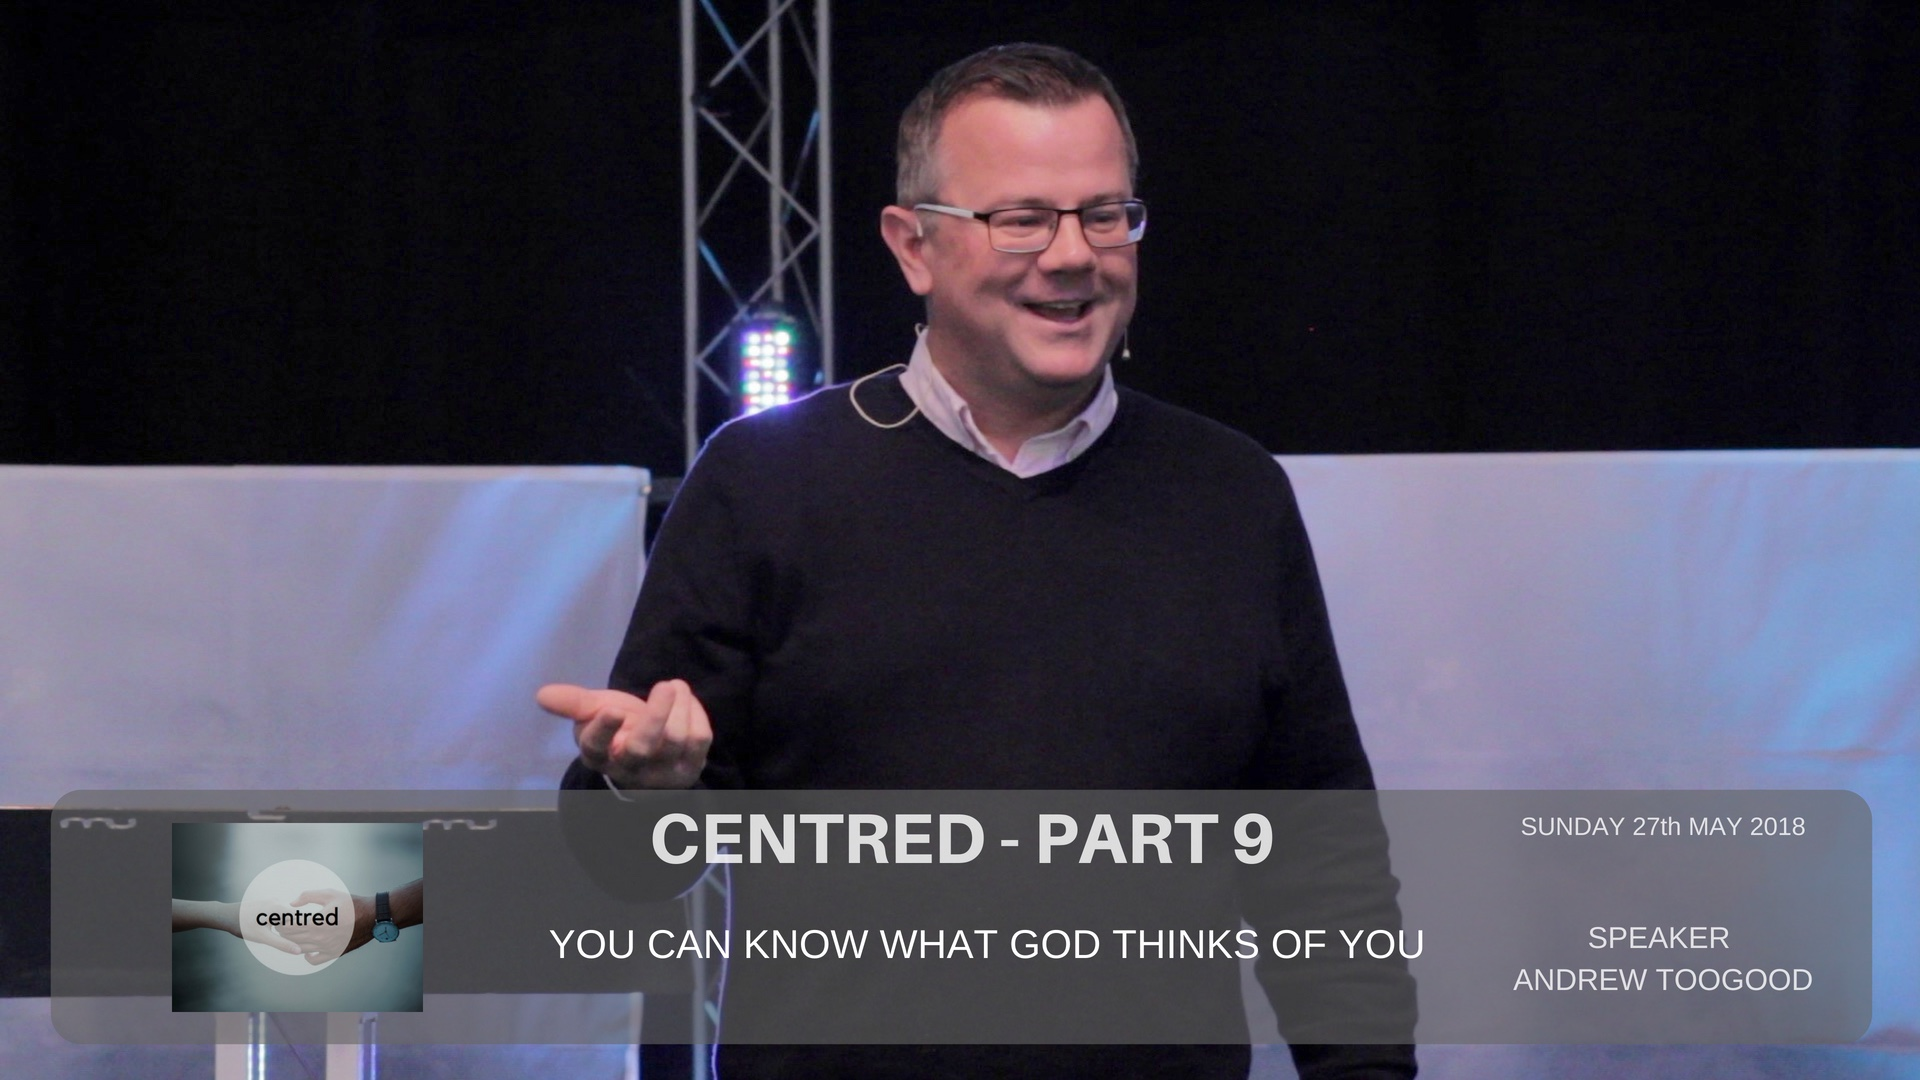 Centred - Part 9 - You can know what God thinks of you